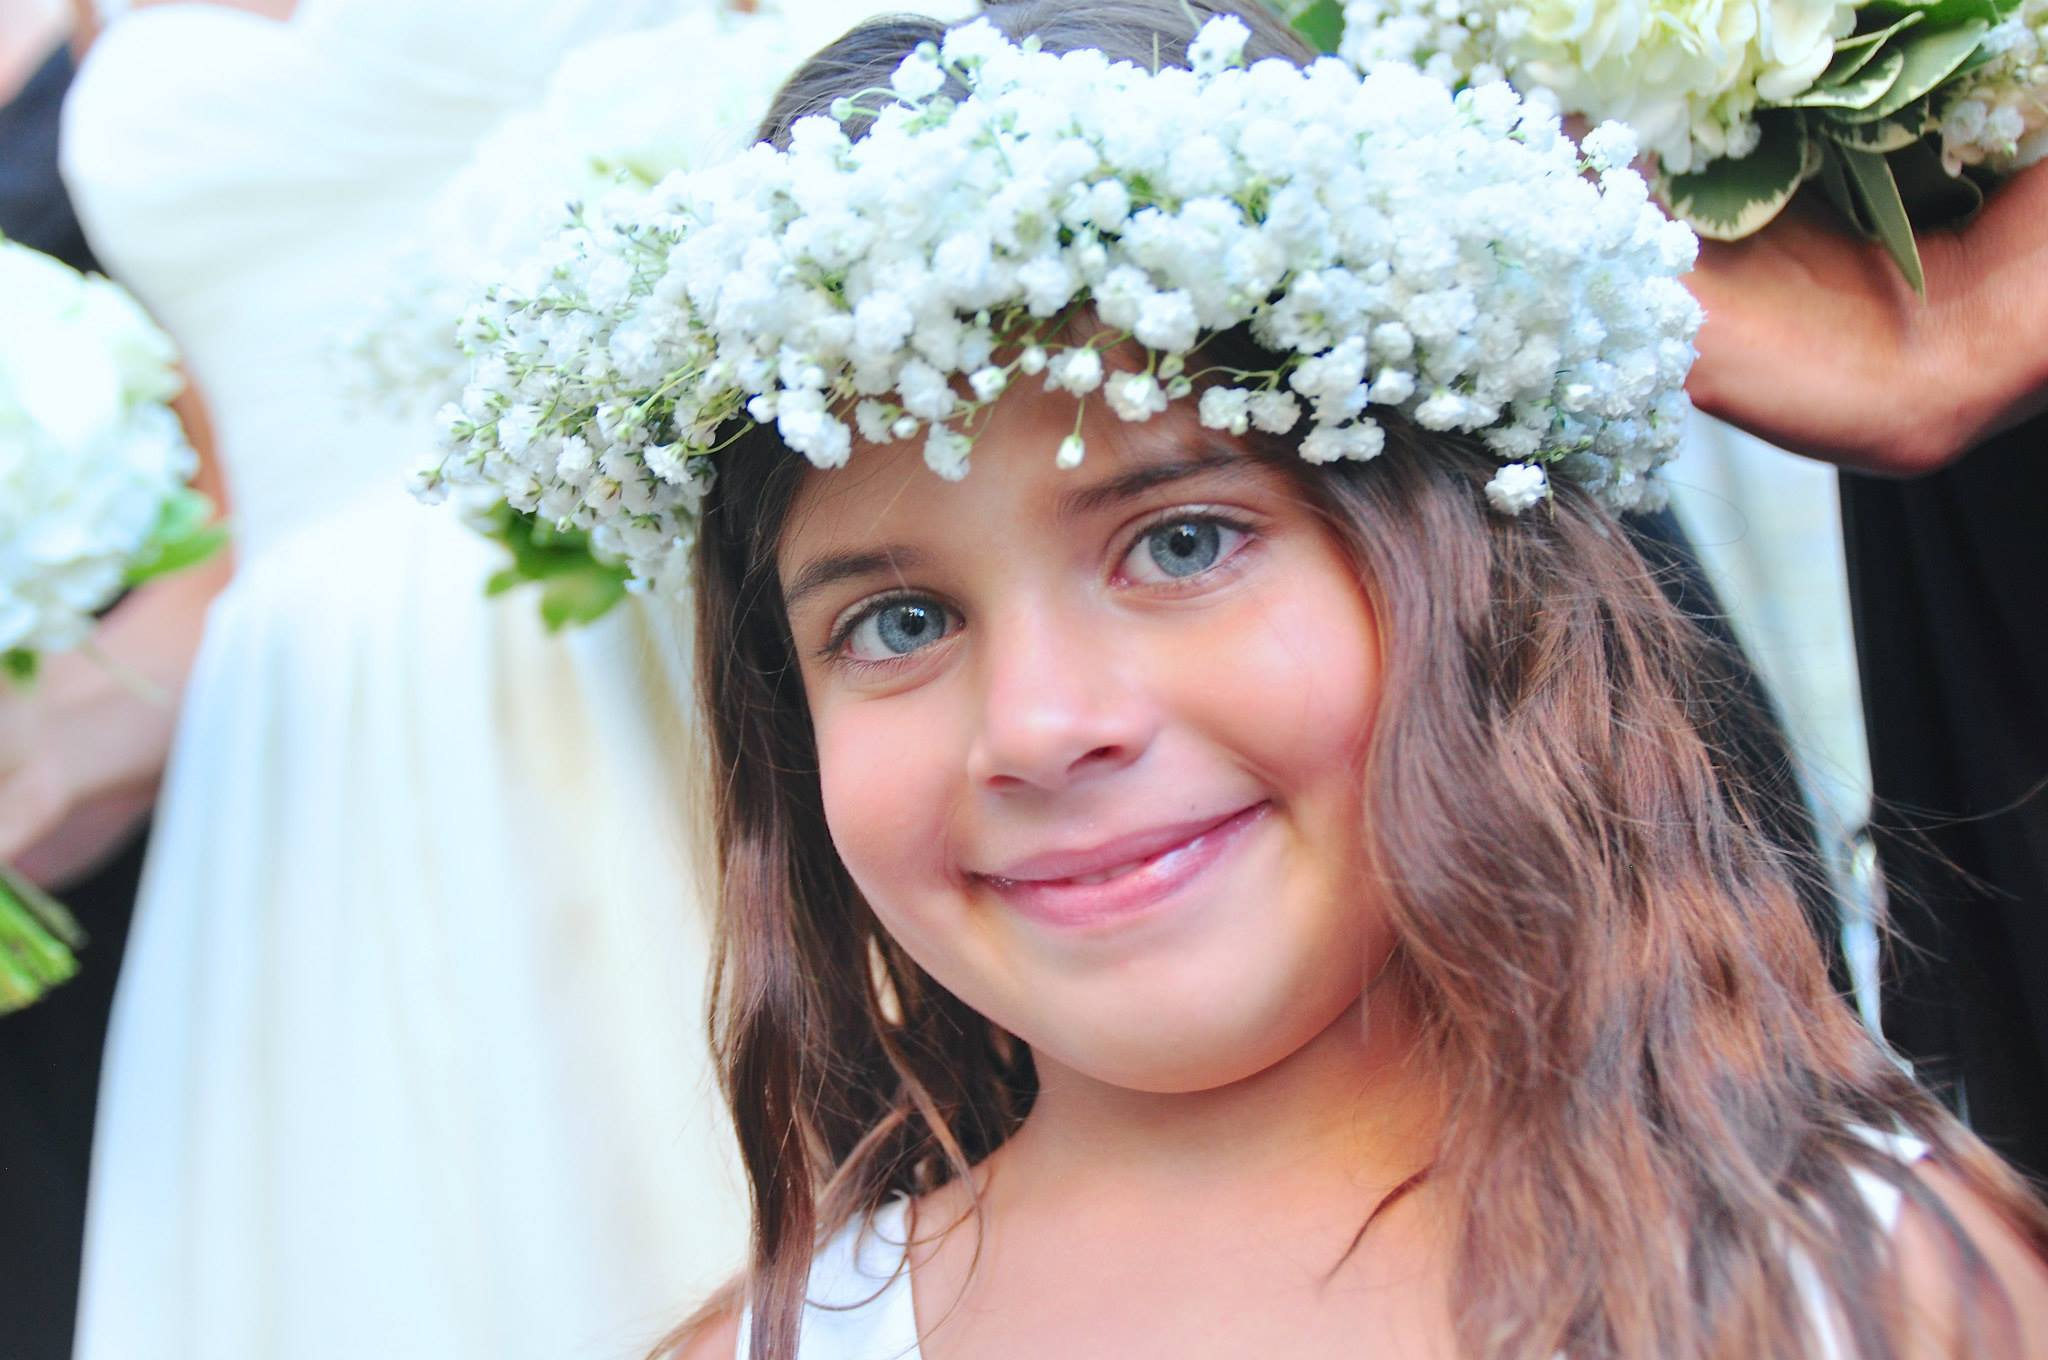 flower-girl-halo-made-of-flowers-babys-breathe-halo-flower-crown-wedding-artist-ben-keys-wed-on-canvas